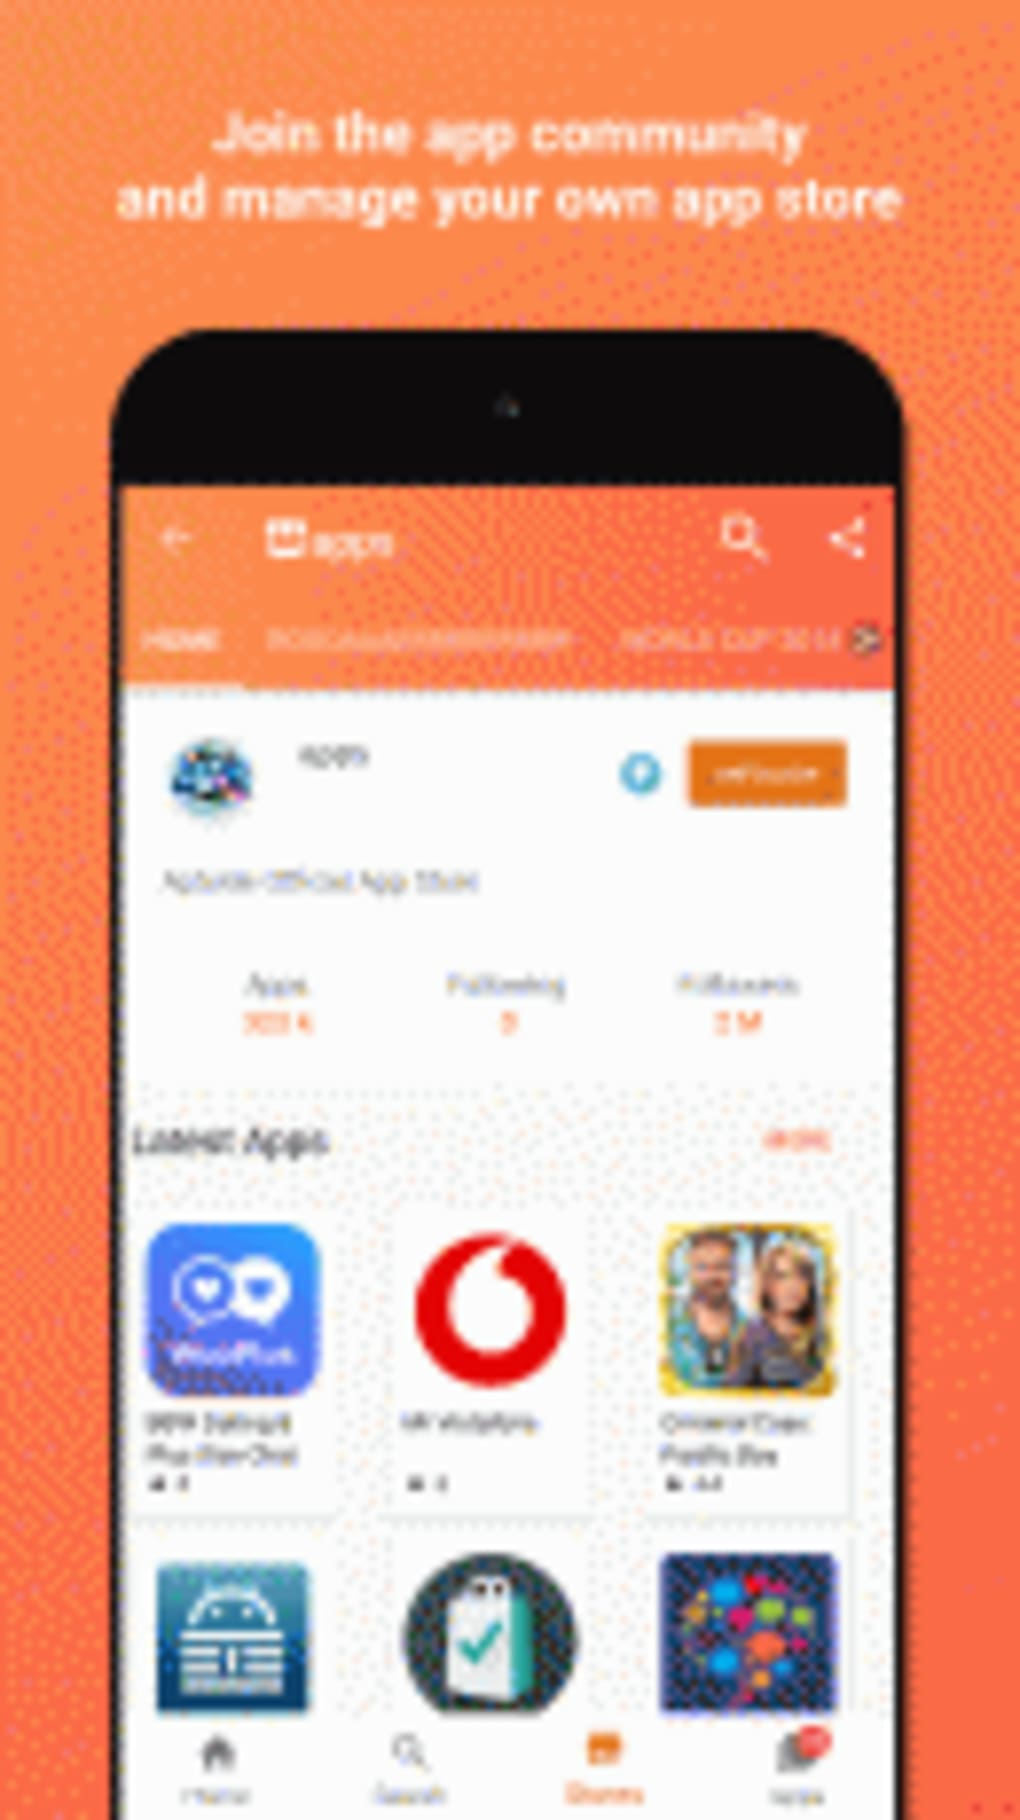 Aptoide APK for Android - Download